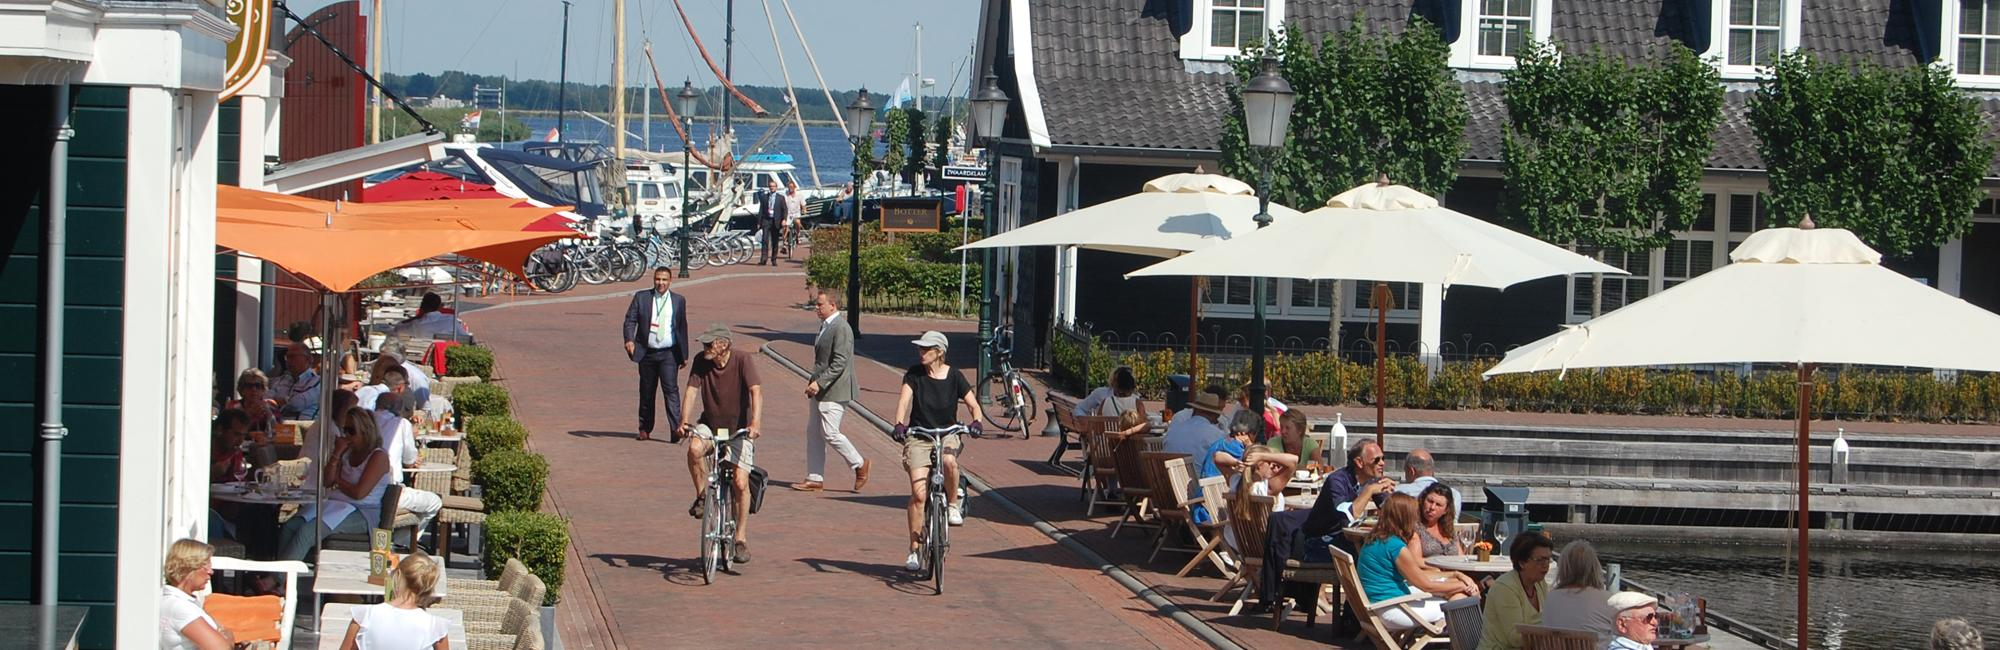 Dutch Bike Tours Radreisen IJsselmeer Tour